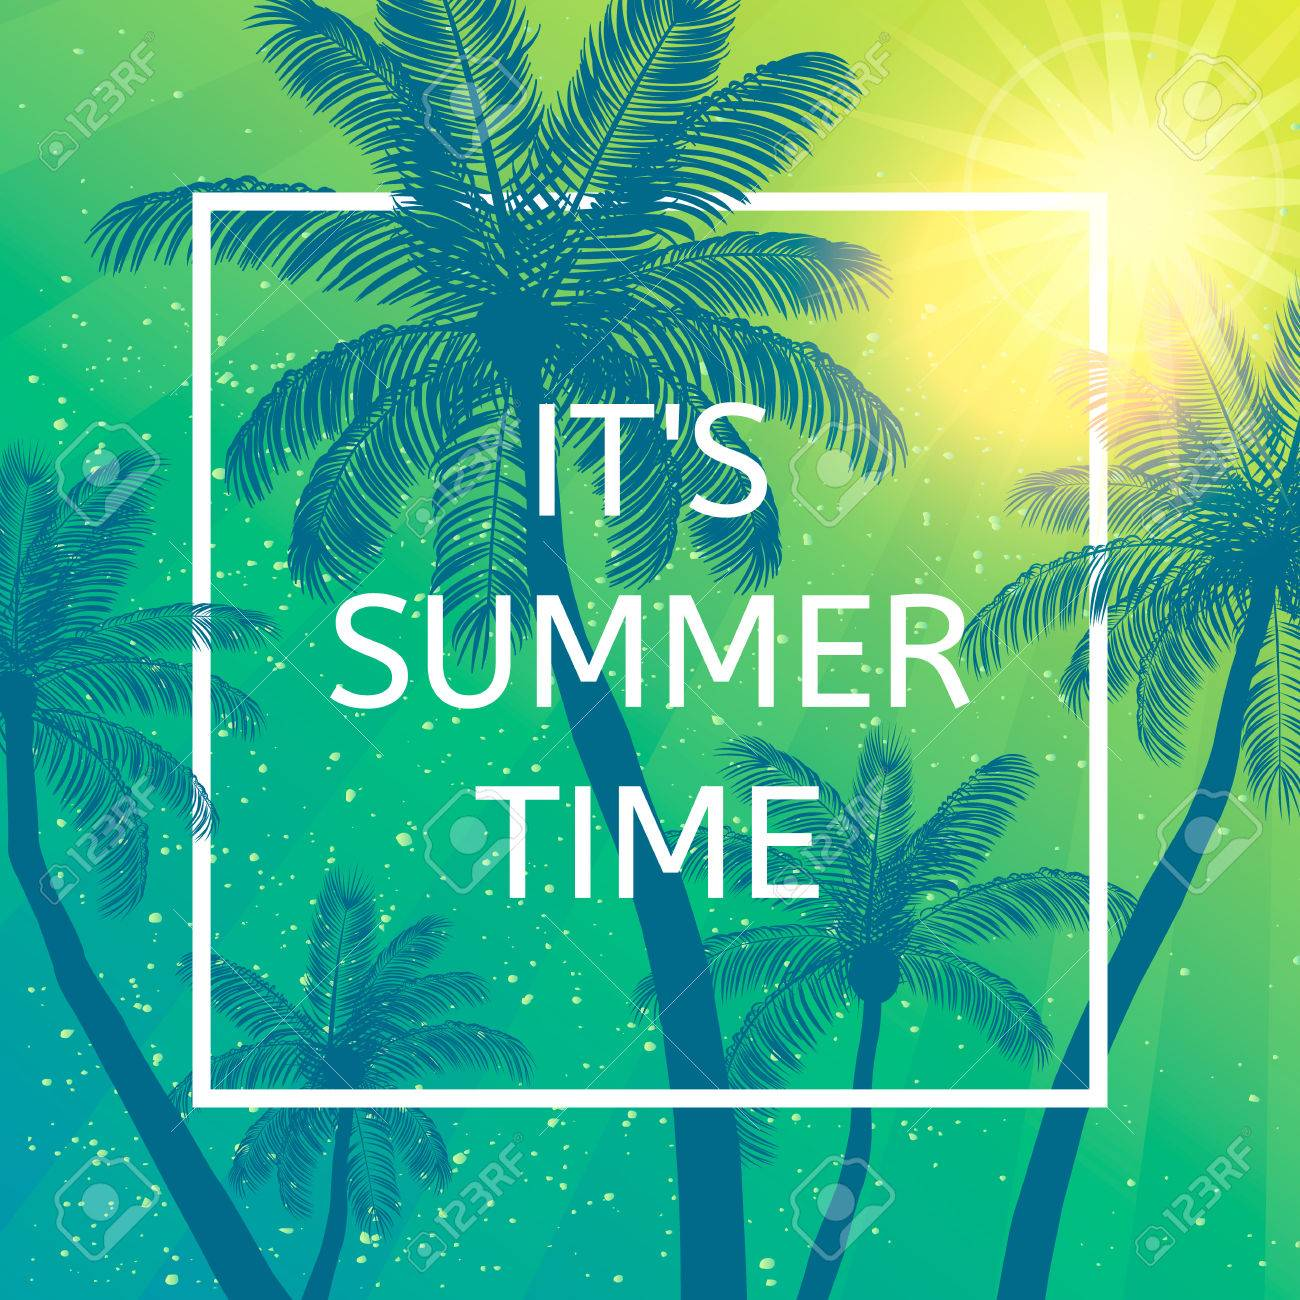 Its Summer Time Wallpaper Fun Party Background Picture